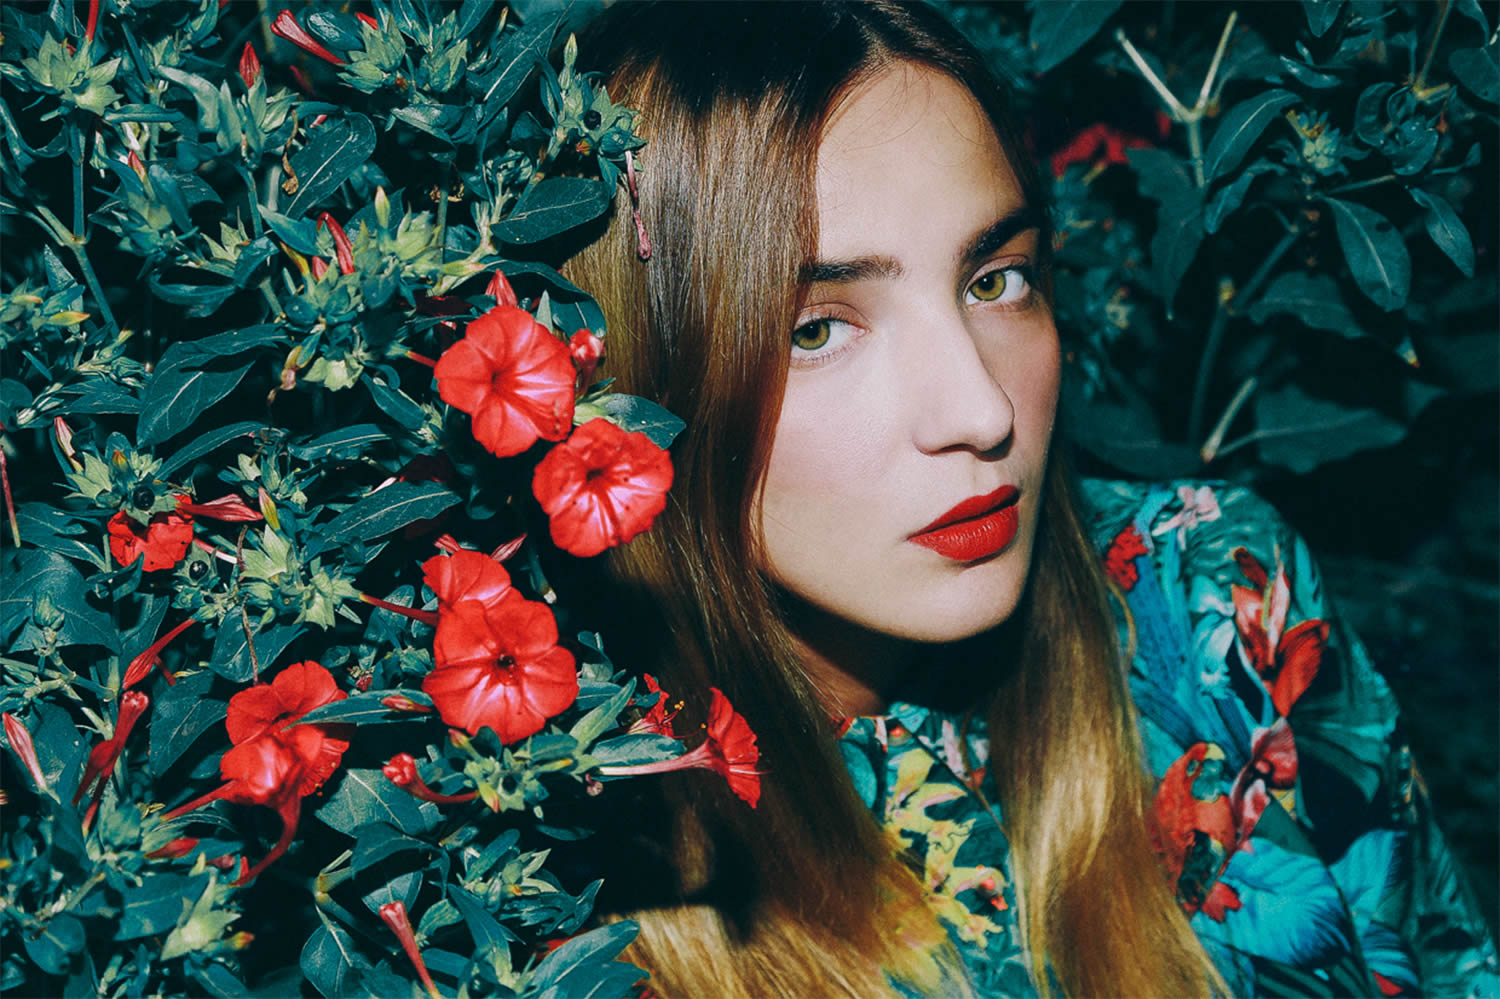 girl red lipstick with red flowers, photo by Denef Huvaj